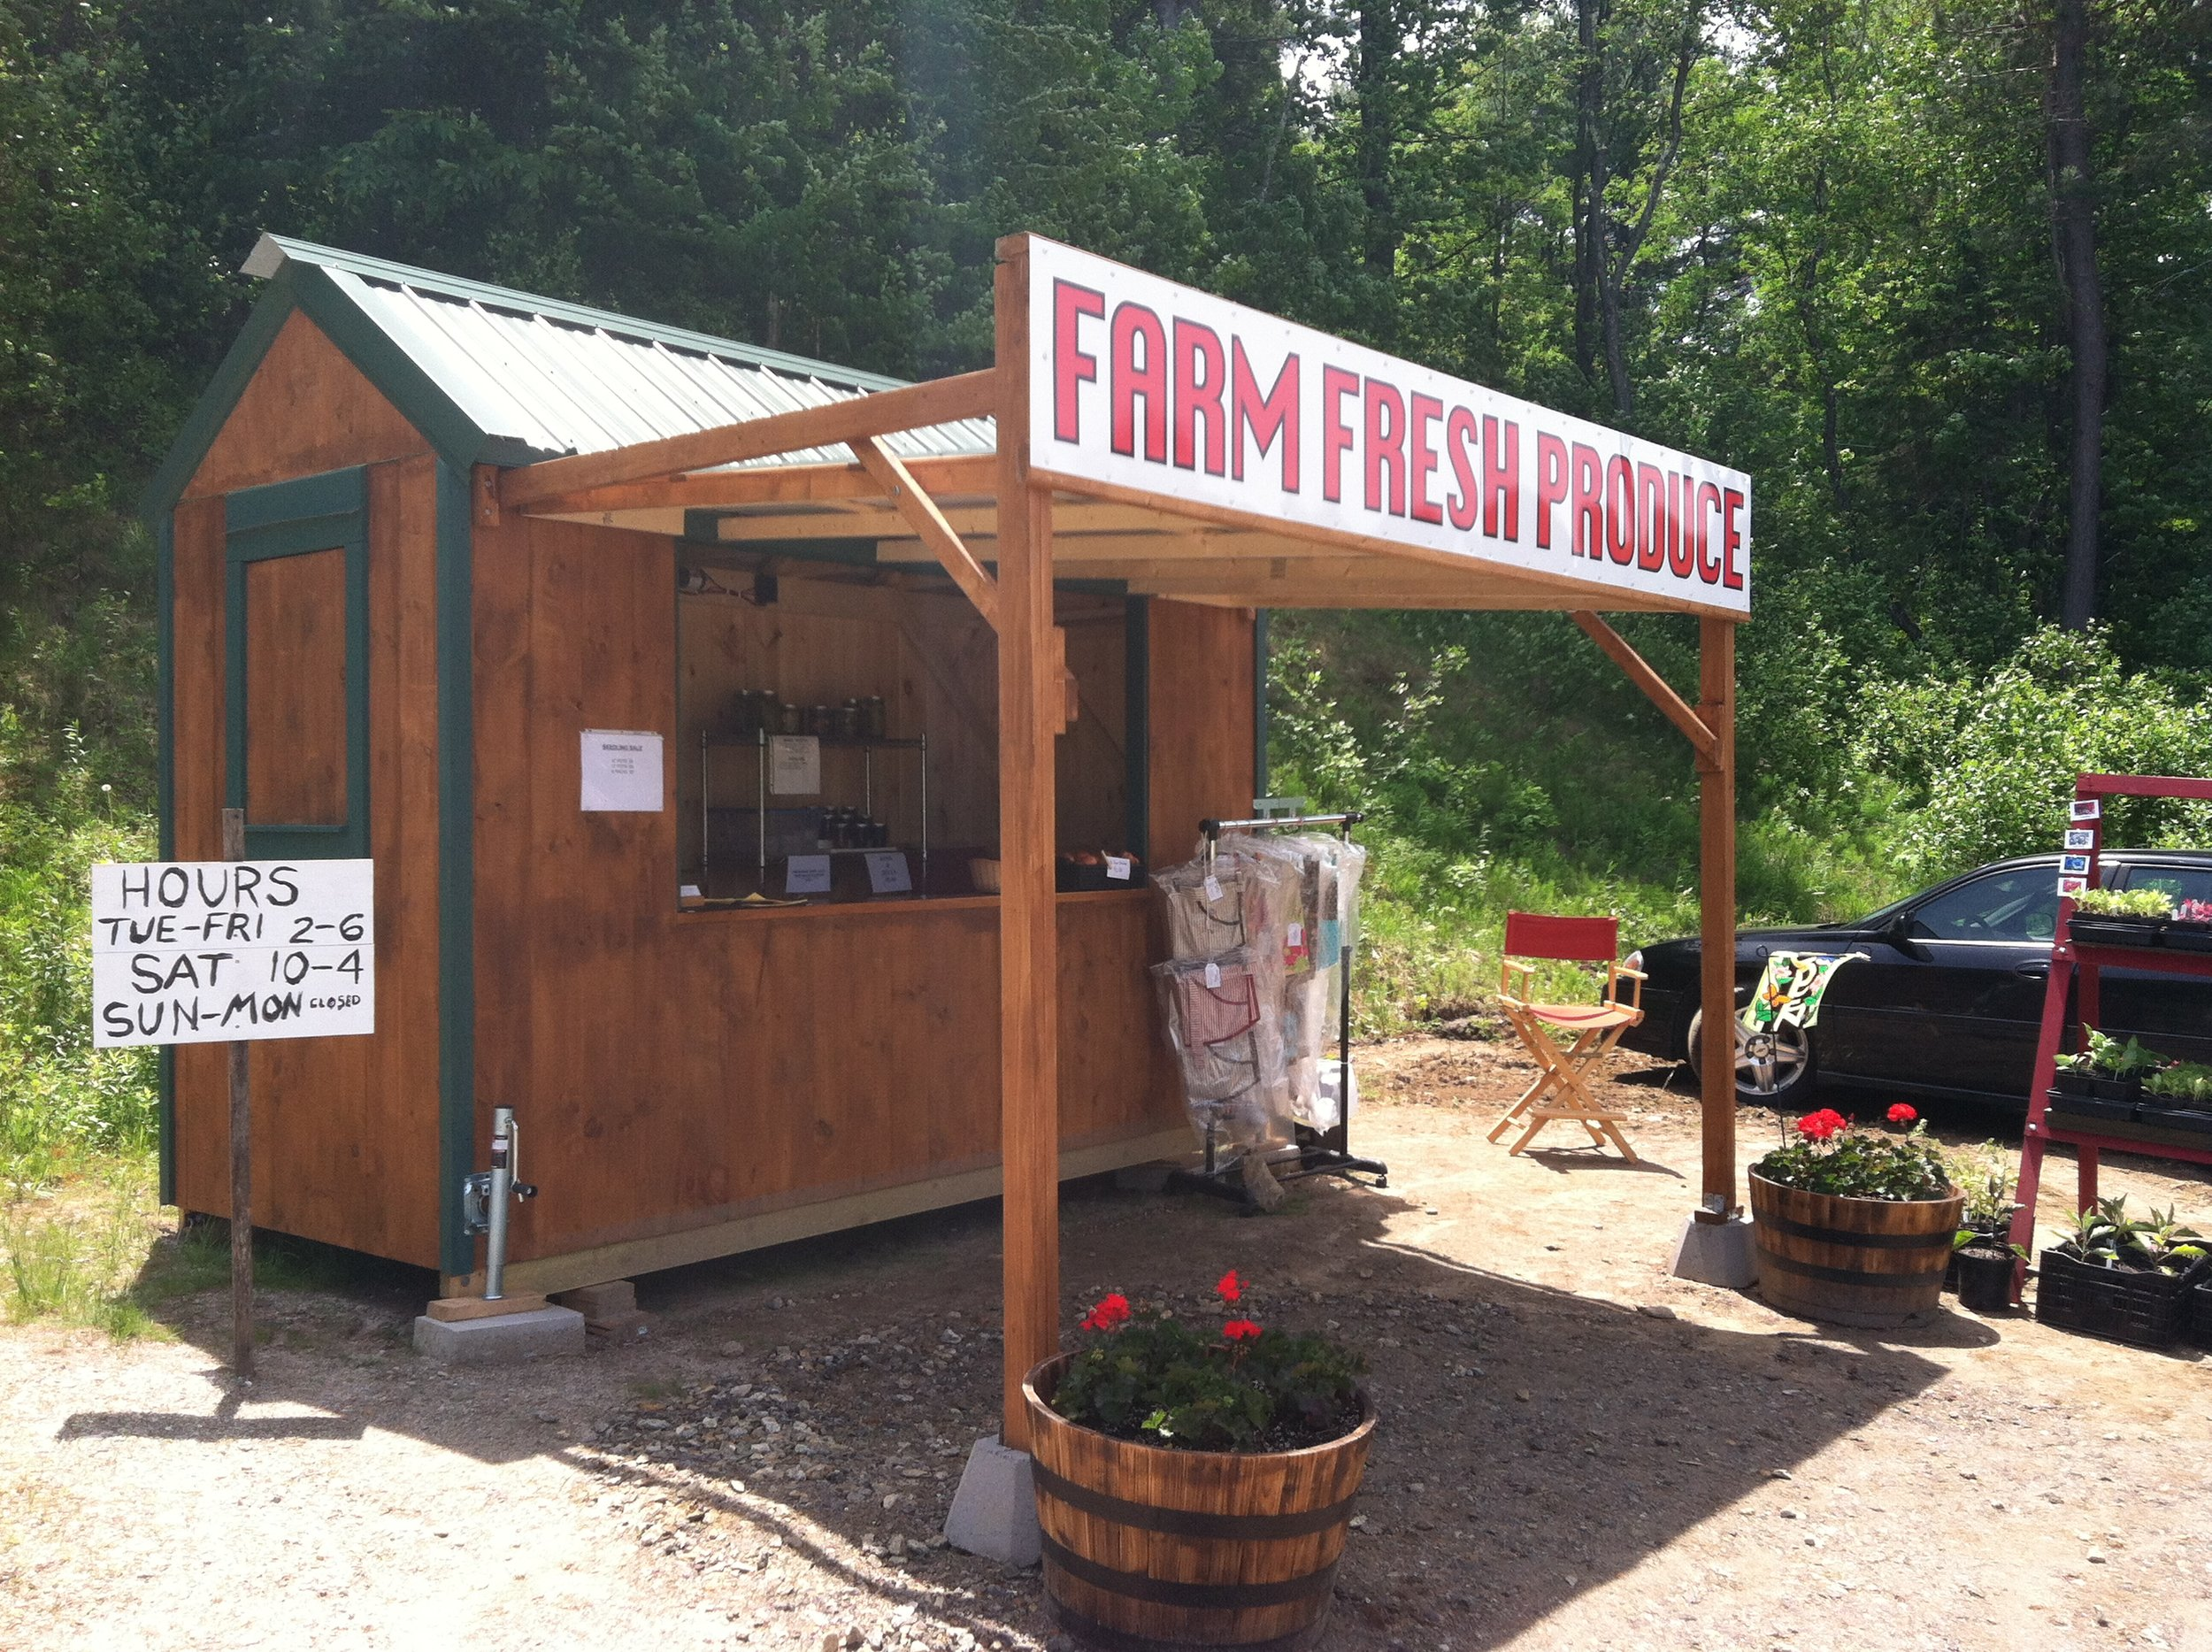 The farm stand open for business.